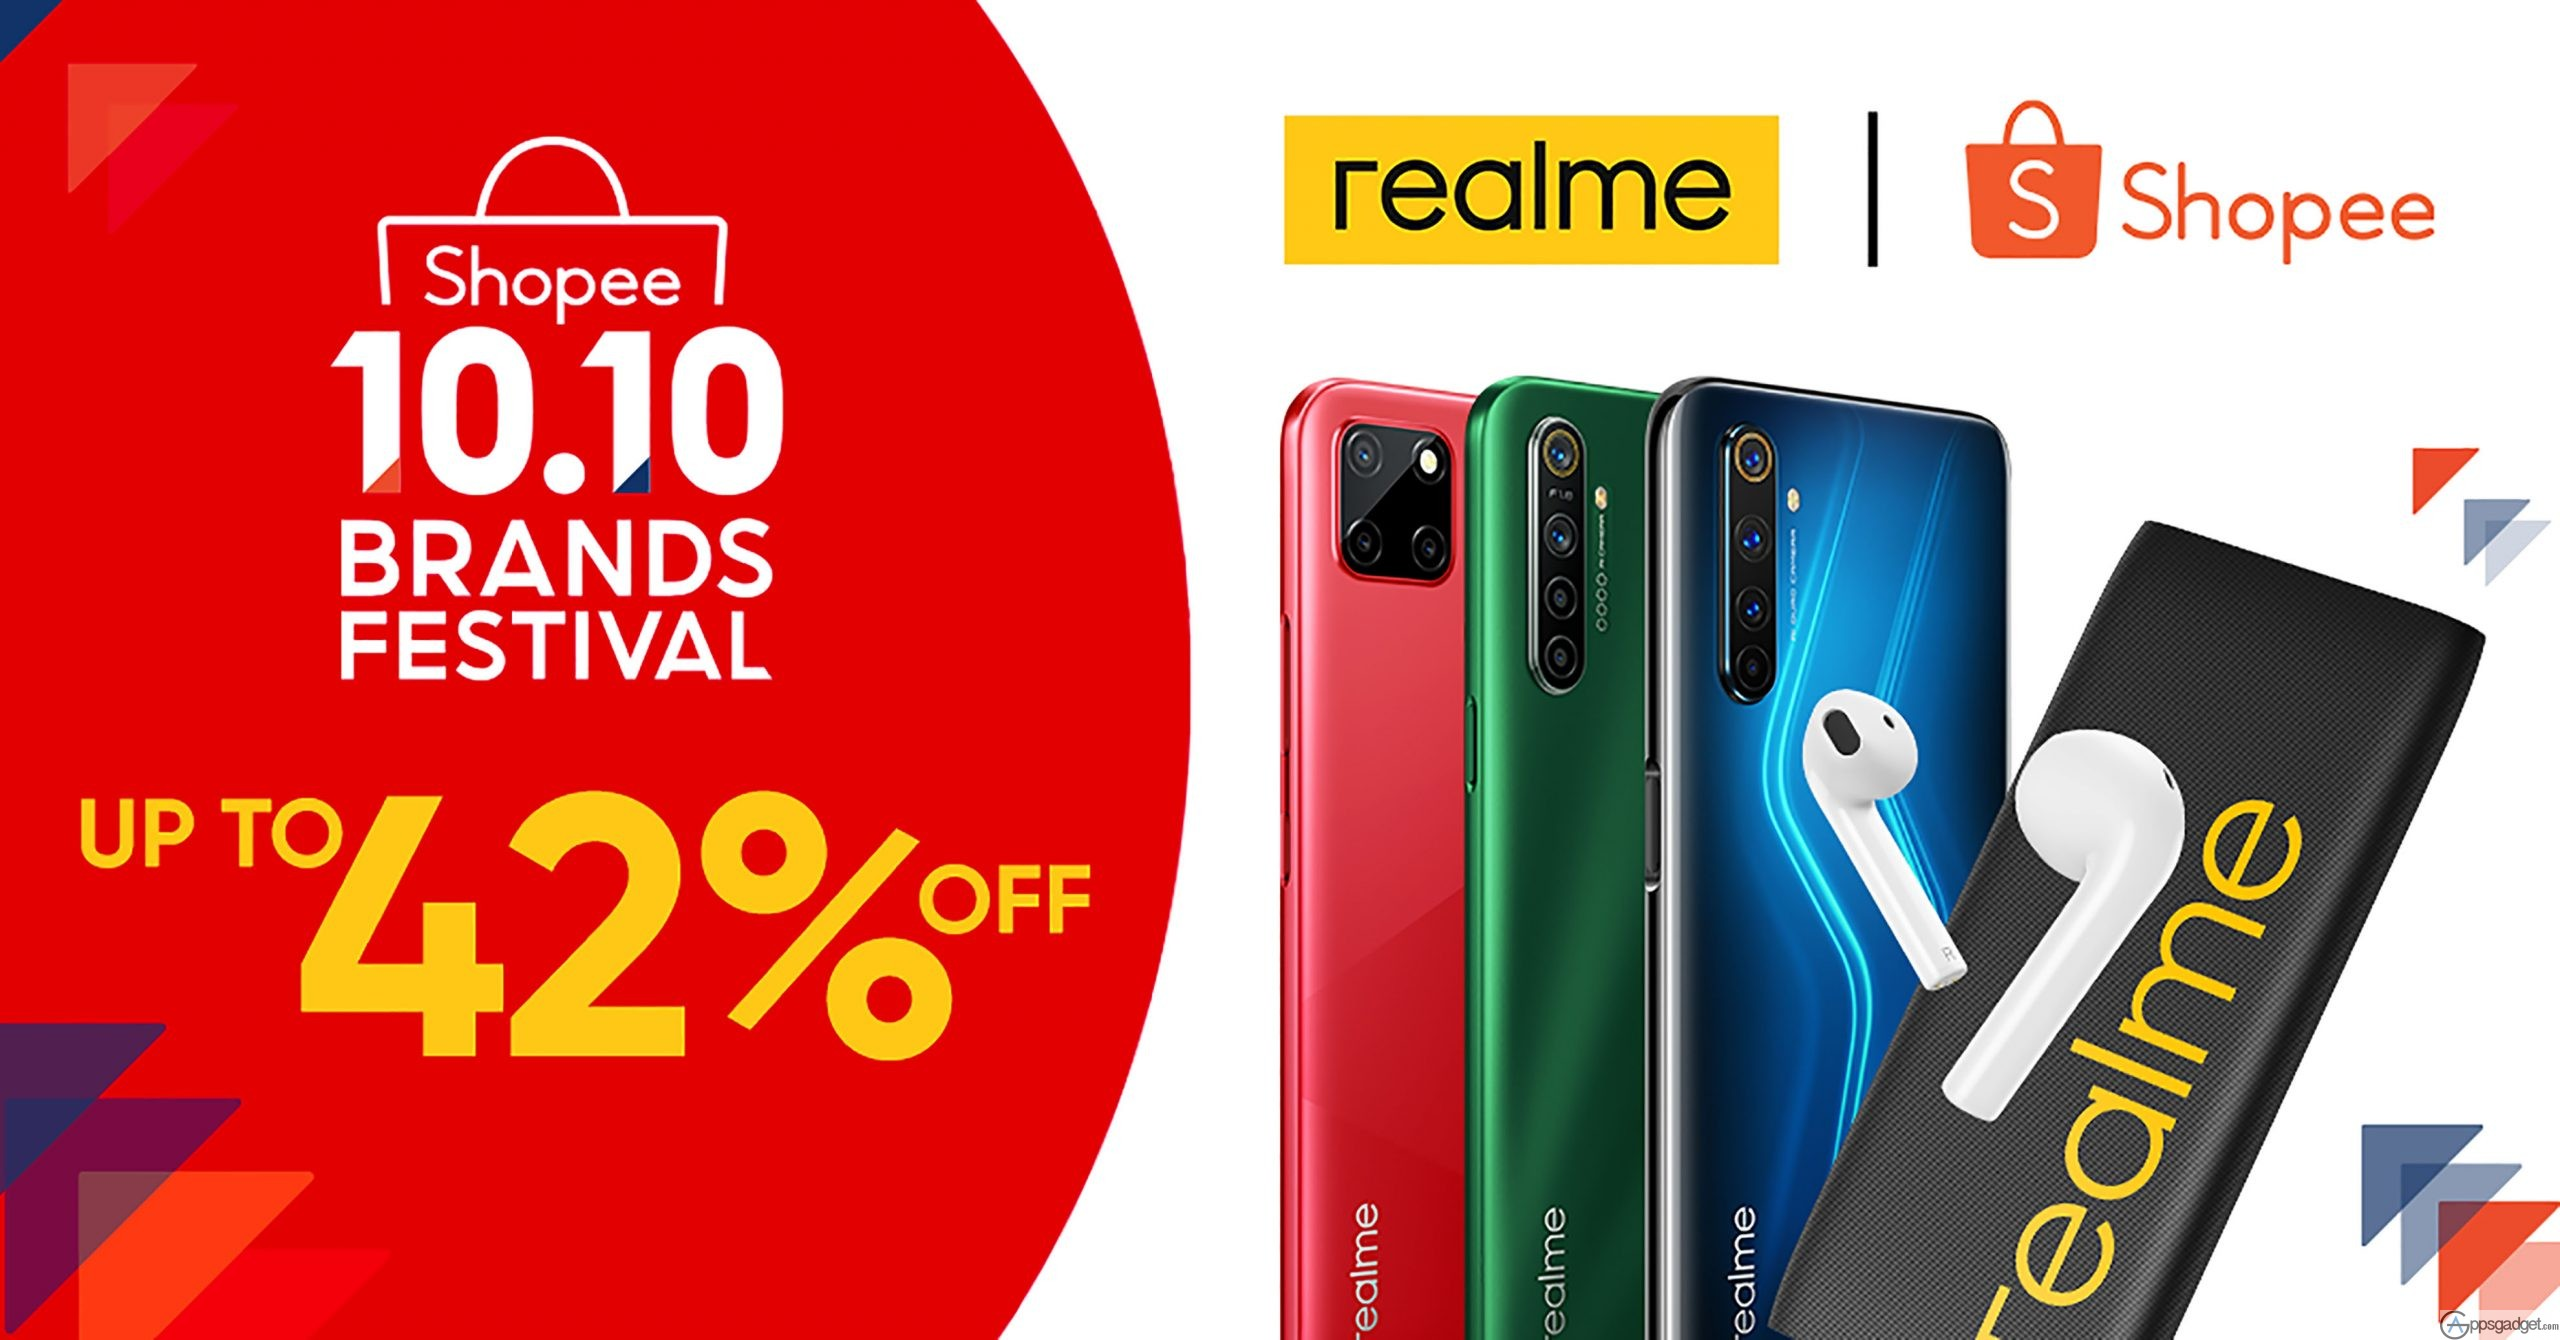 realme Shopee 10.10 Brand Festival Sale Get Up to 42% Discount